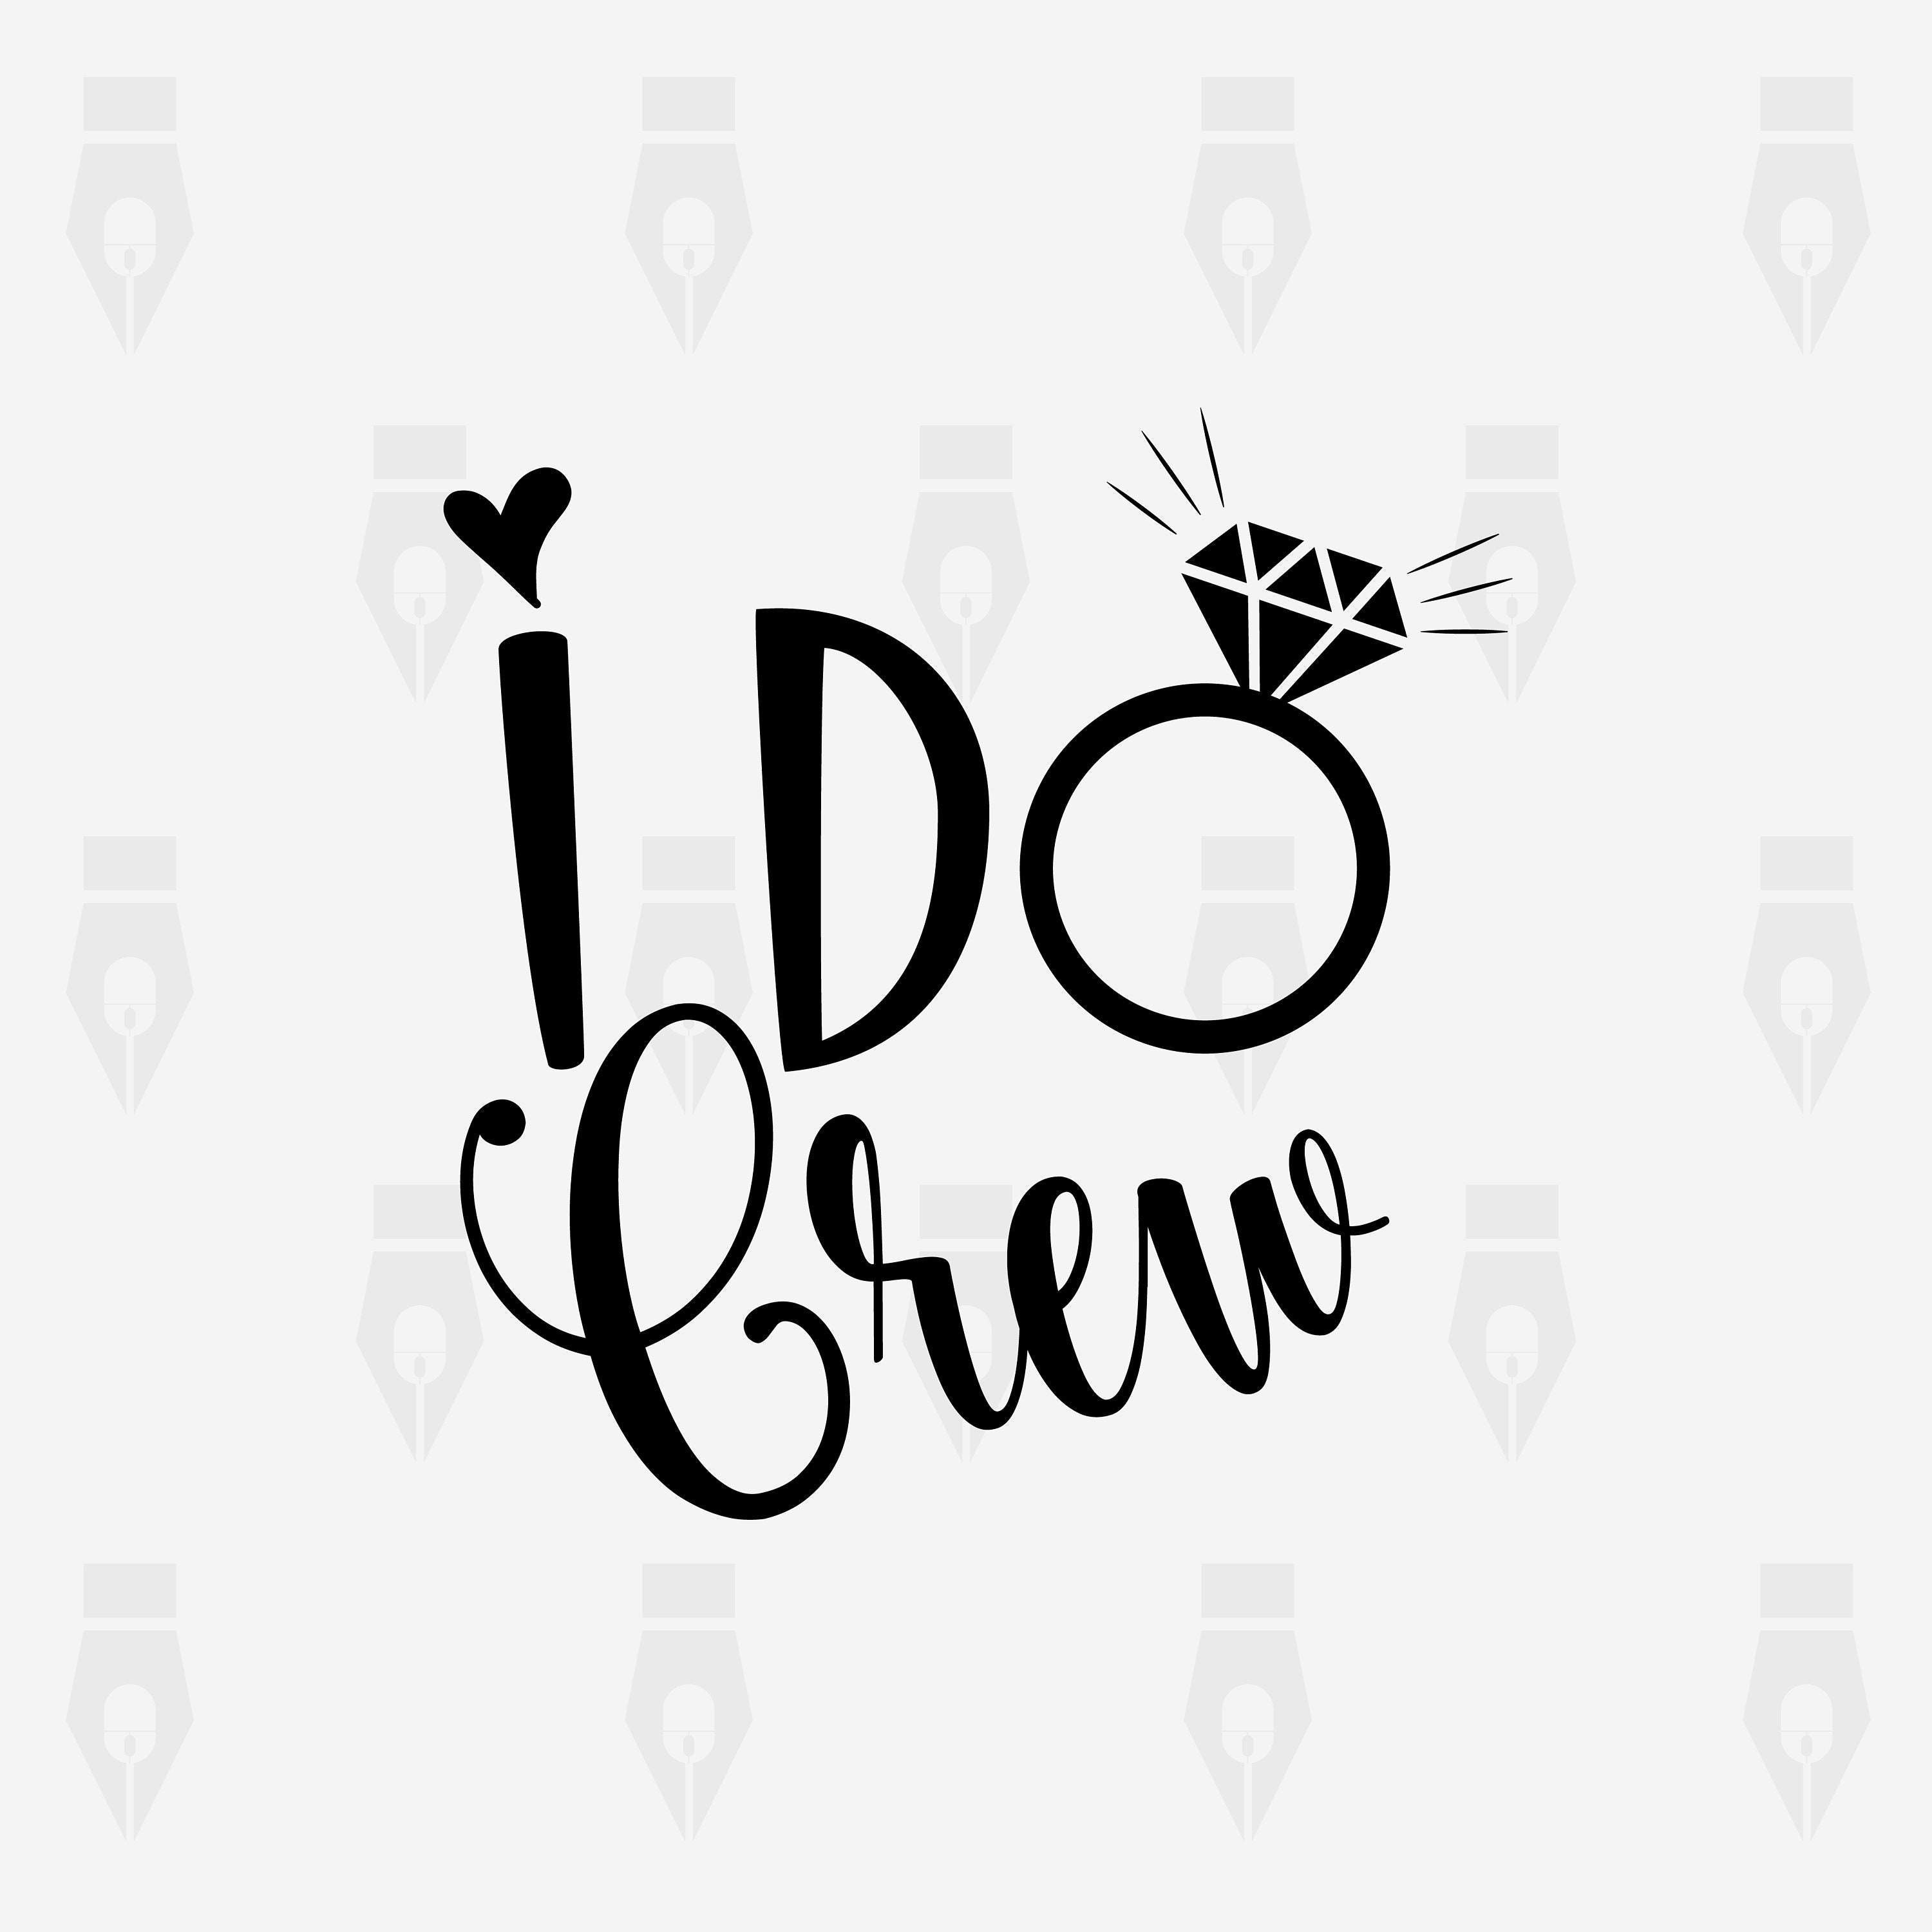 i do crew svg i do crew digital clipart files for design etsy Get It Done Clip Art 50